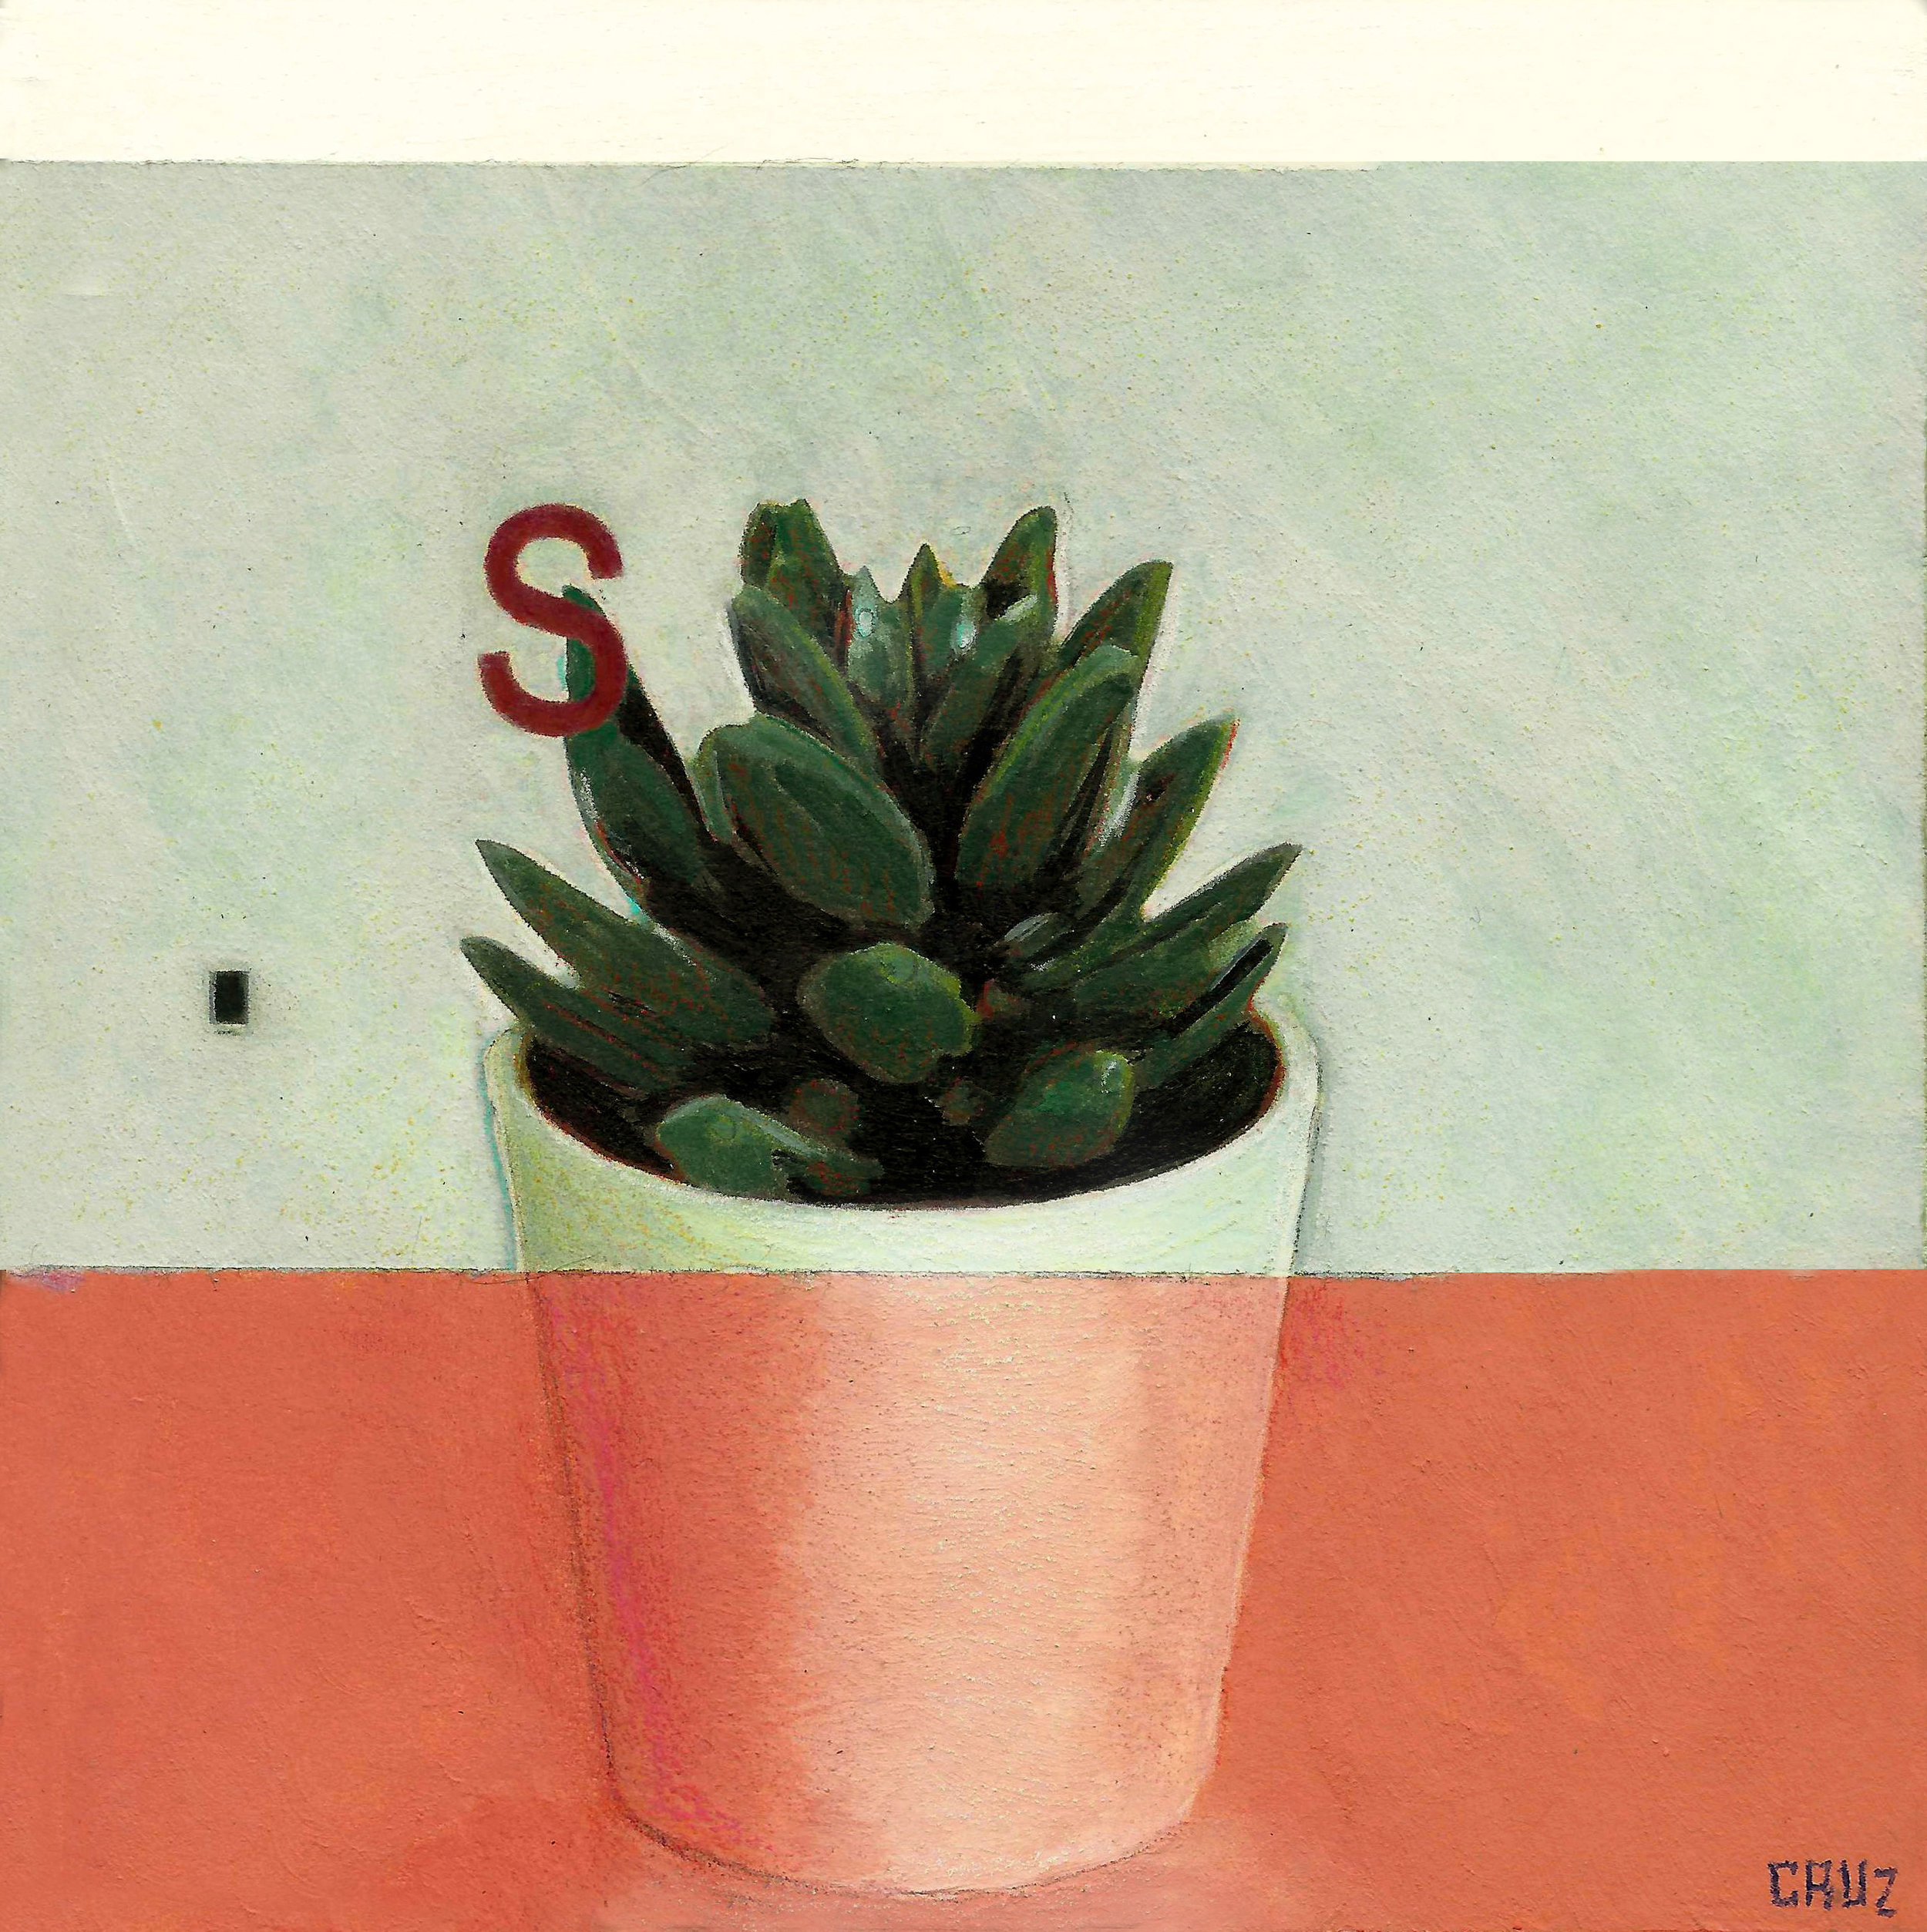 S is for Succulent